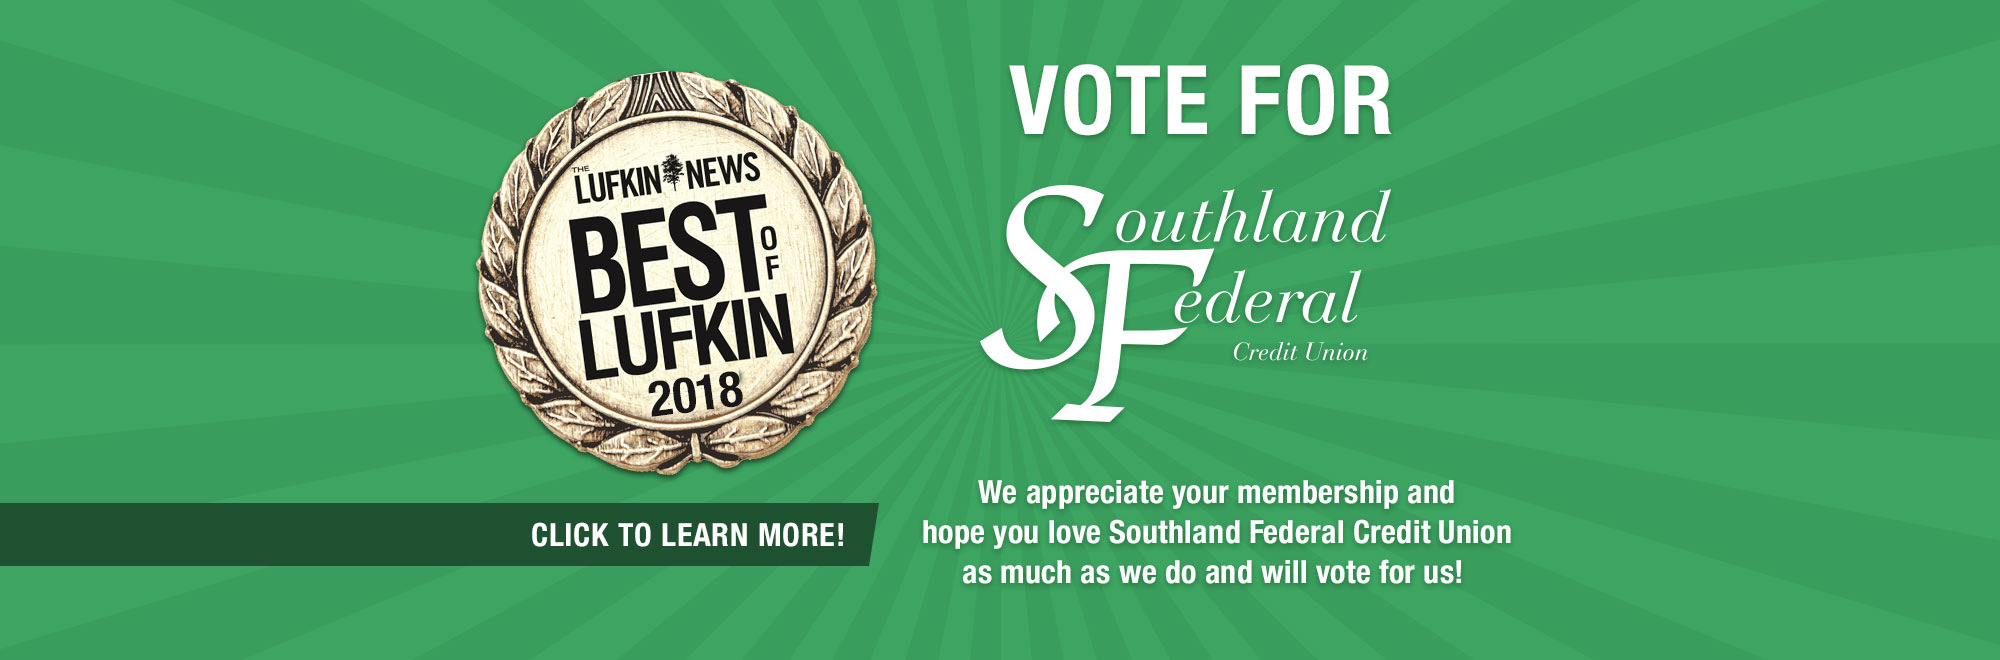 Best of Lufkin 2018 Main Banner. Click to learn more